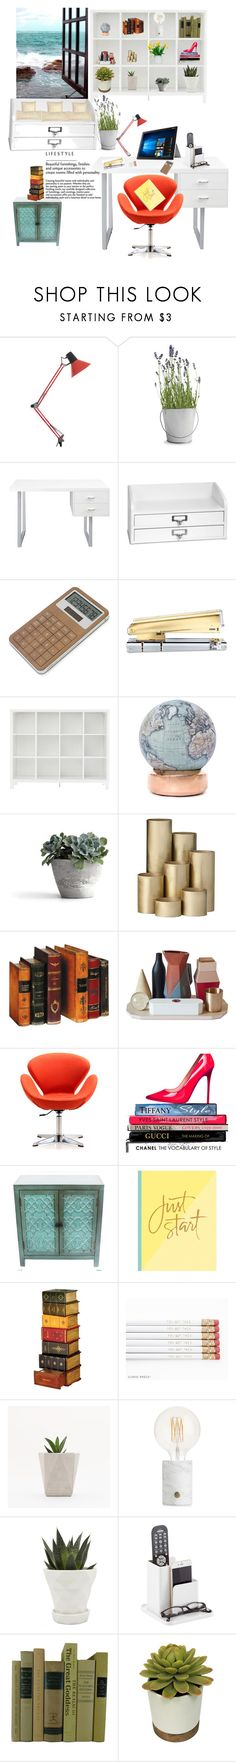 """Untitled #210"" by eveallen-1 ❤ liked on Polyvore featuring Potting Shed Creations, Improvements, LEXON, russell+hazel, Bellerby & Co, ferm LIVING, Seletti, Ceets, ASUS and Chronicle Books"